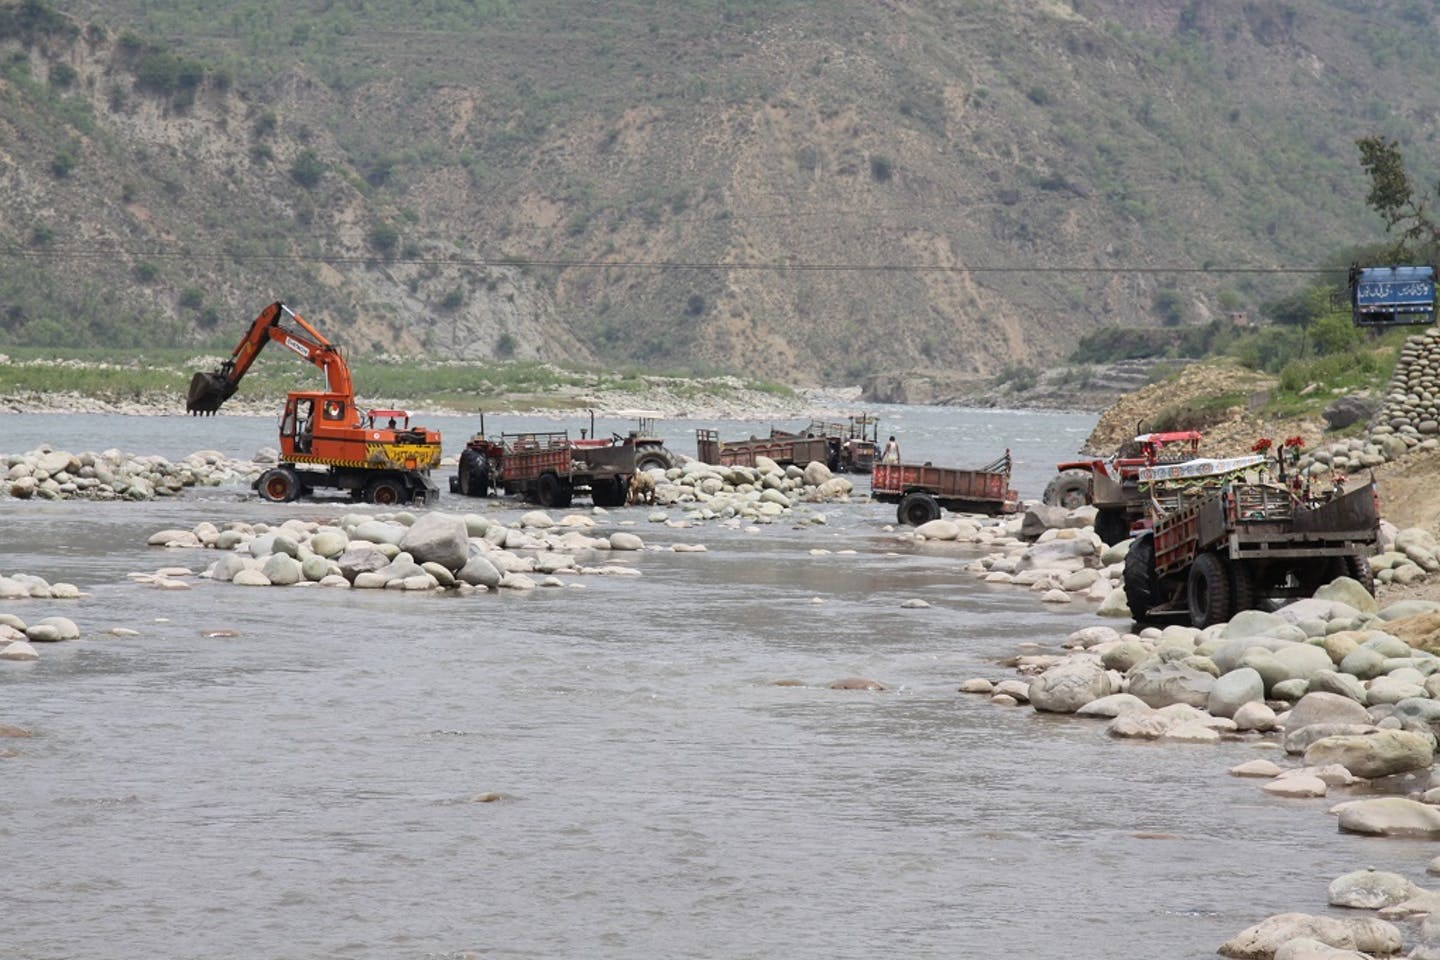 Mining in Poonch river